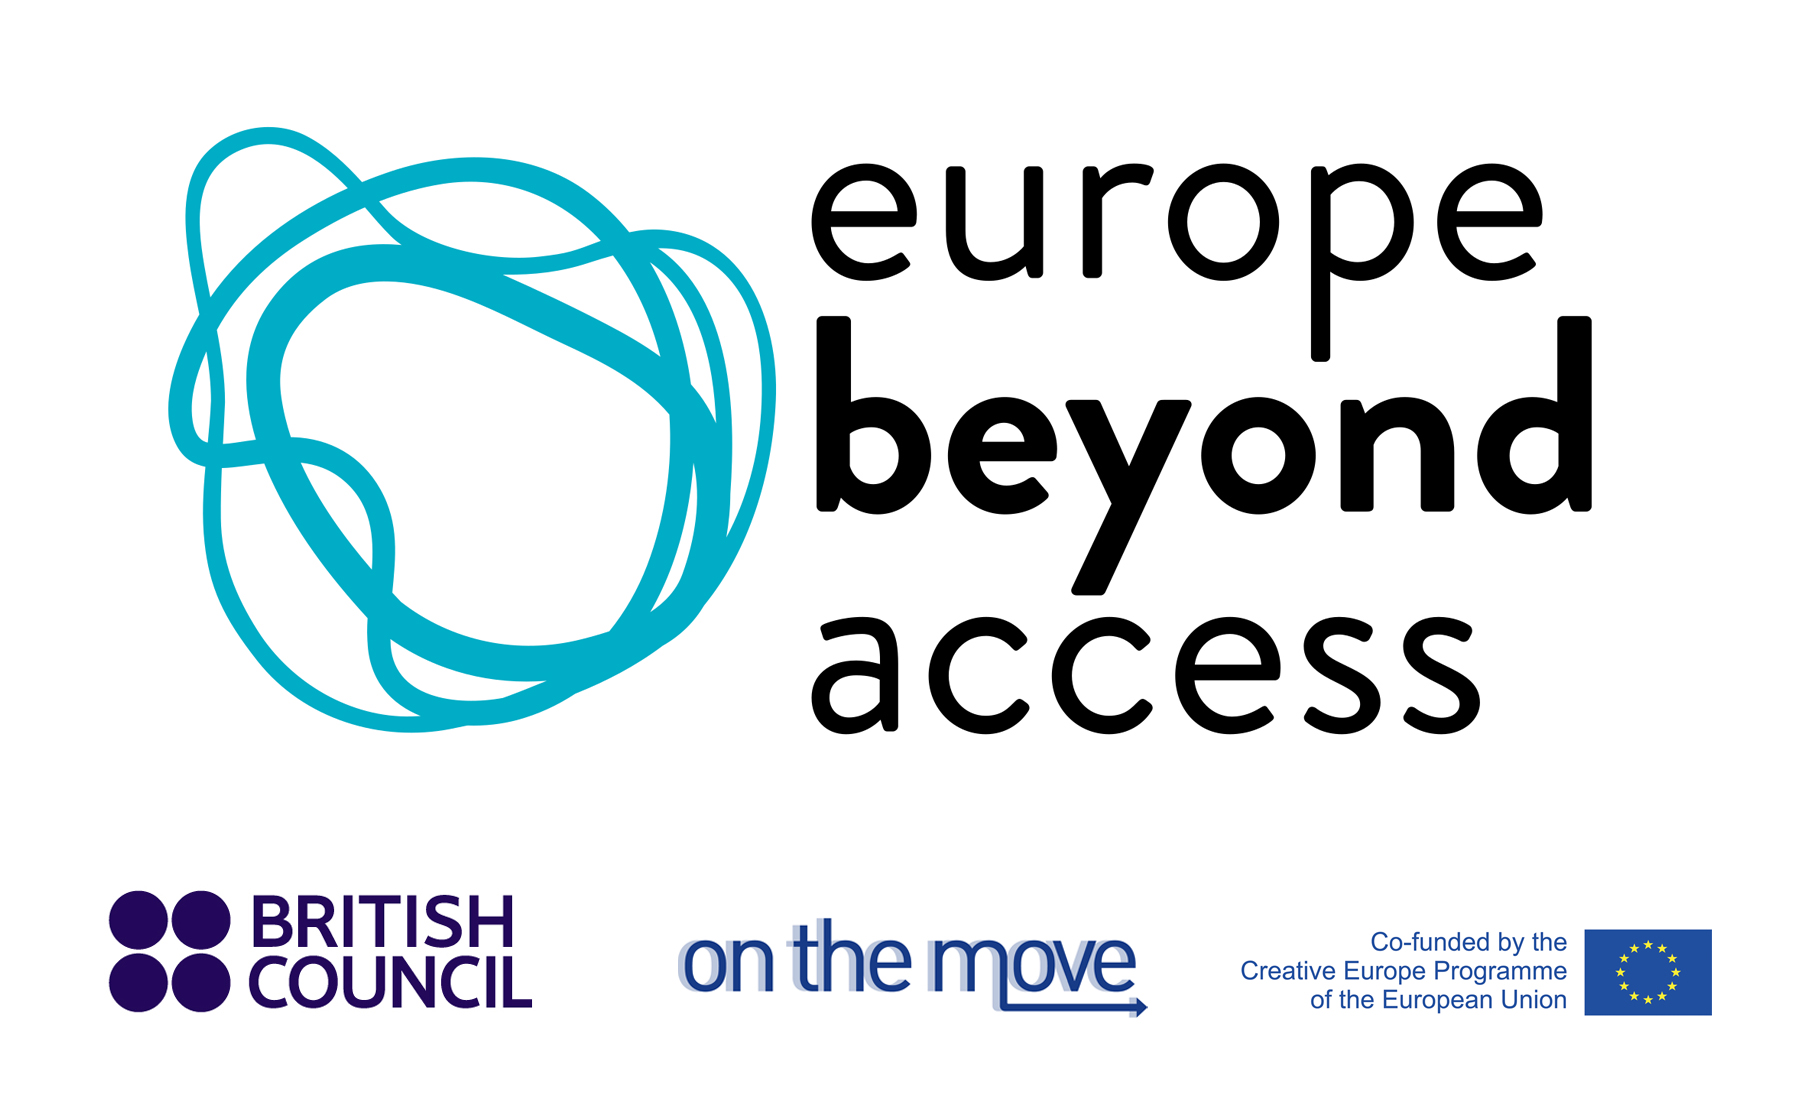 Large logo: 'Europe Beyond Access' next to a graphic of three wavy, overlapping blue circles. Below this, simple logos for British Council, On the Move, and the Creative Europe programme.